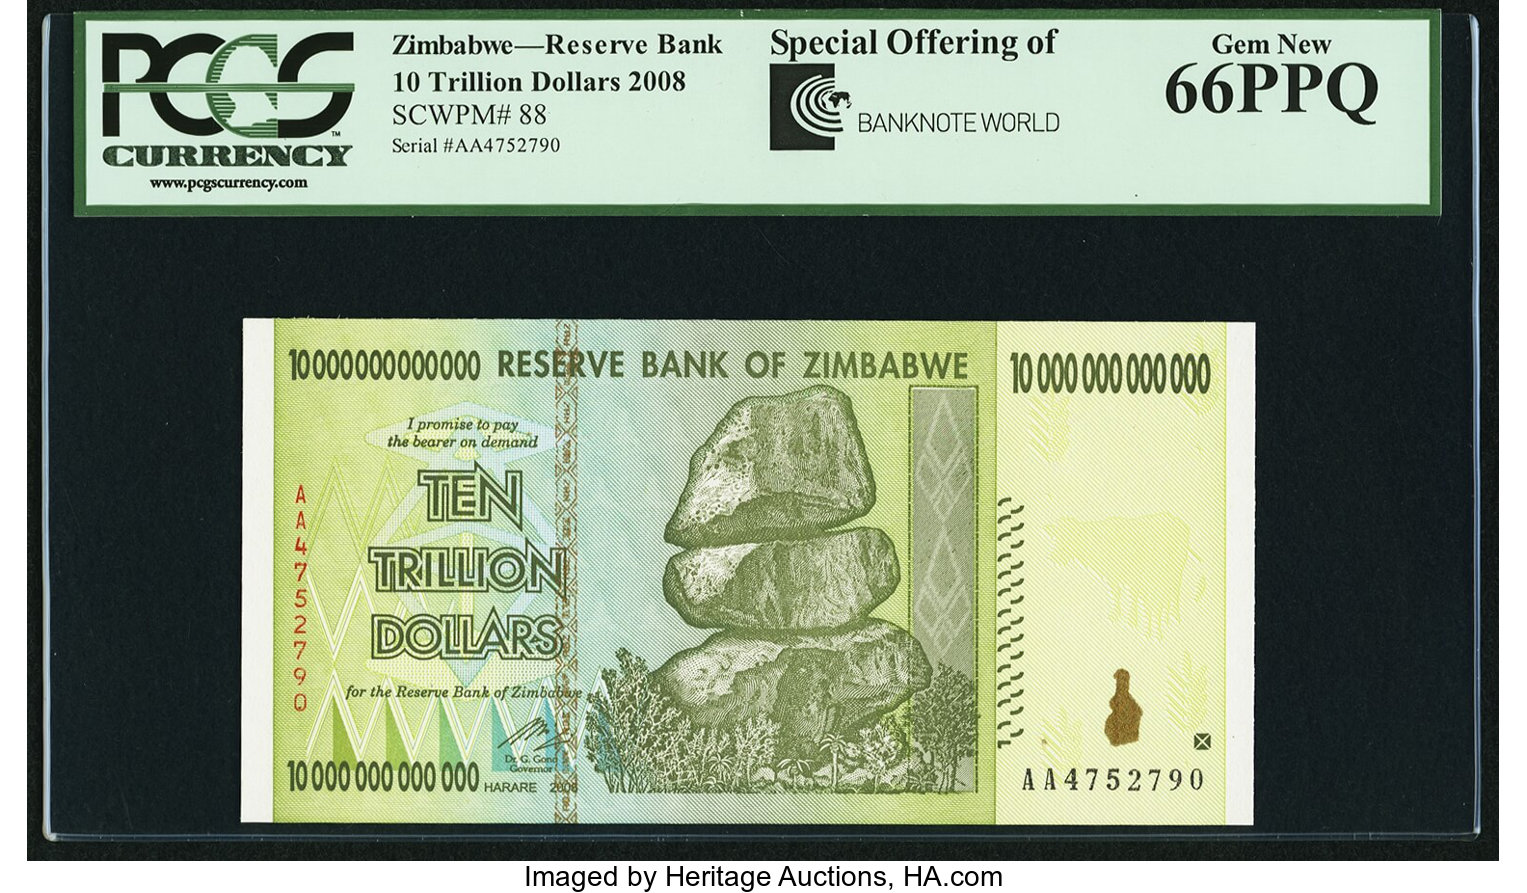 Zimbabwe Reserve Bank of Zimbabwe 10 Trillion Dollars 2008